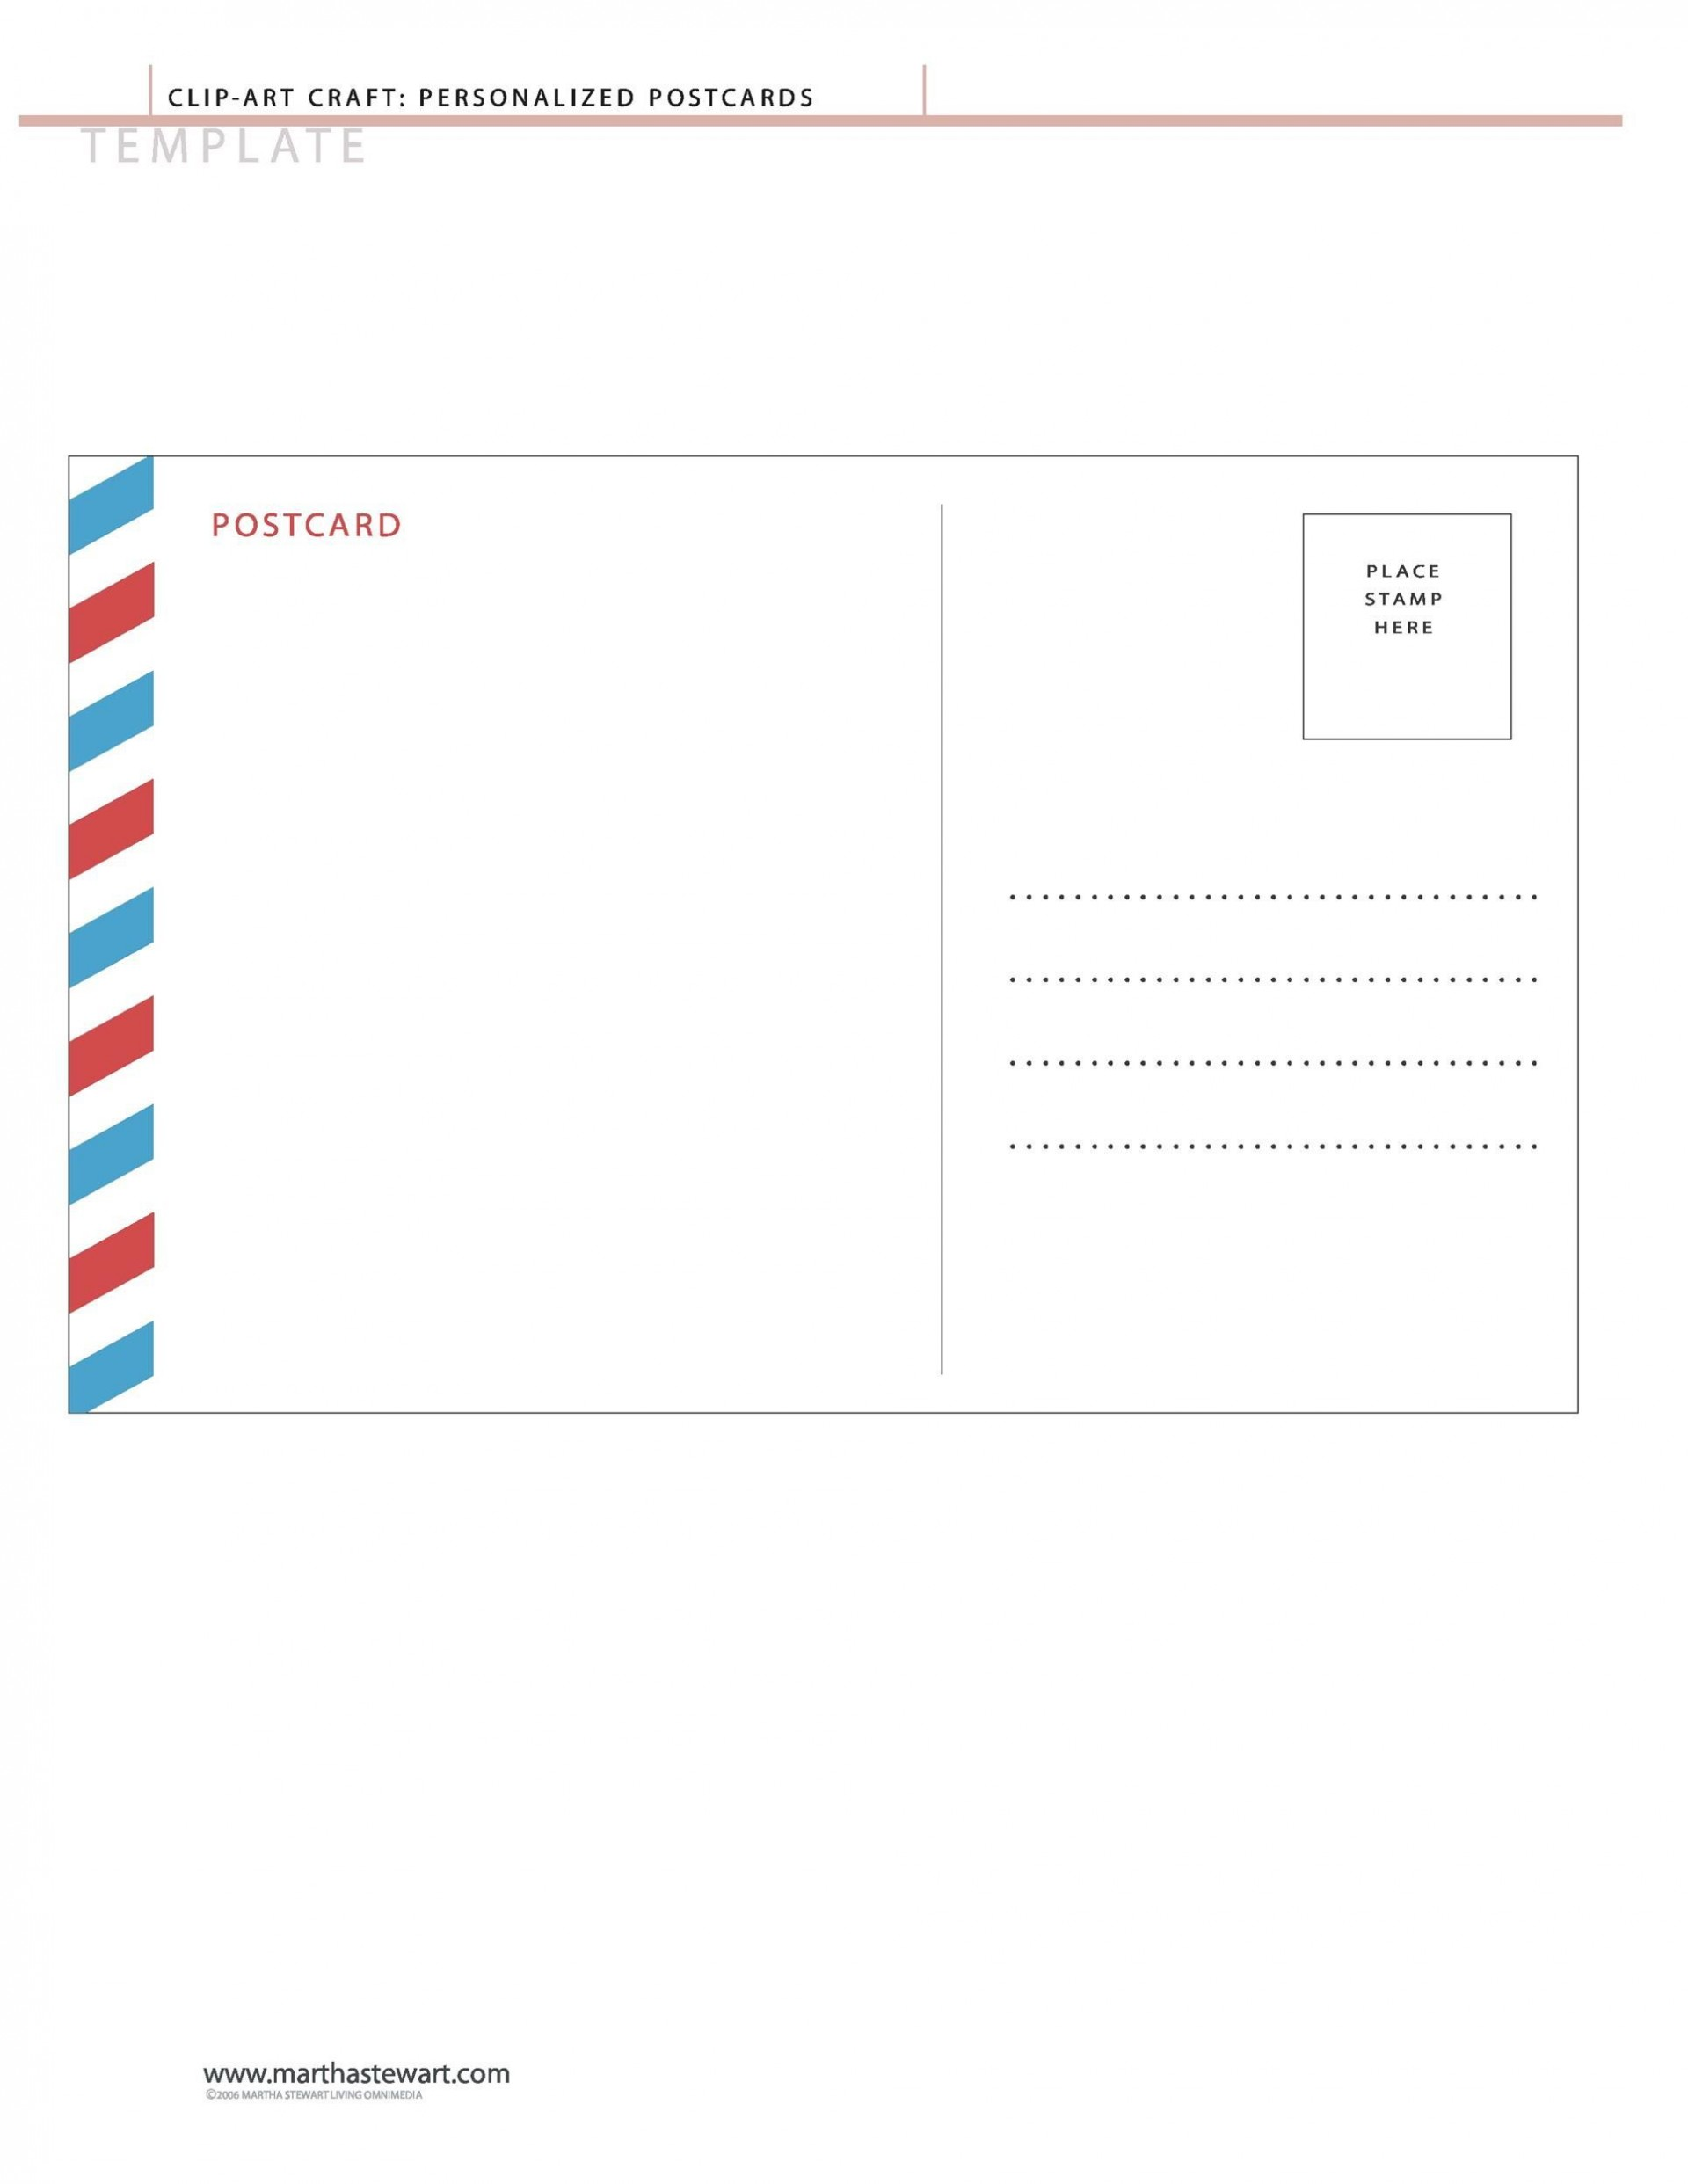 009 Unique Postcard Template Download Microsoft Word Inspiration 1920